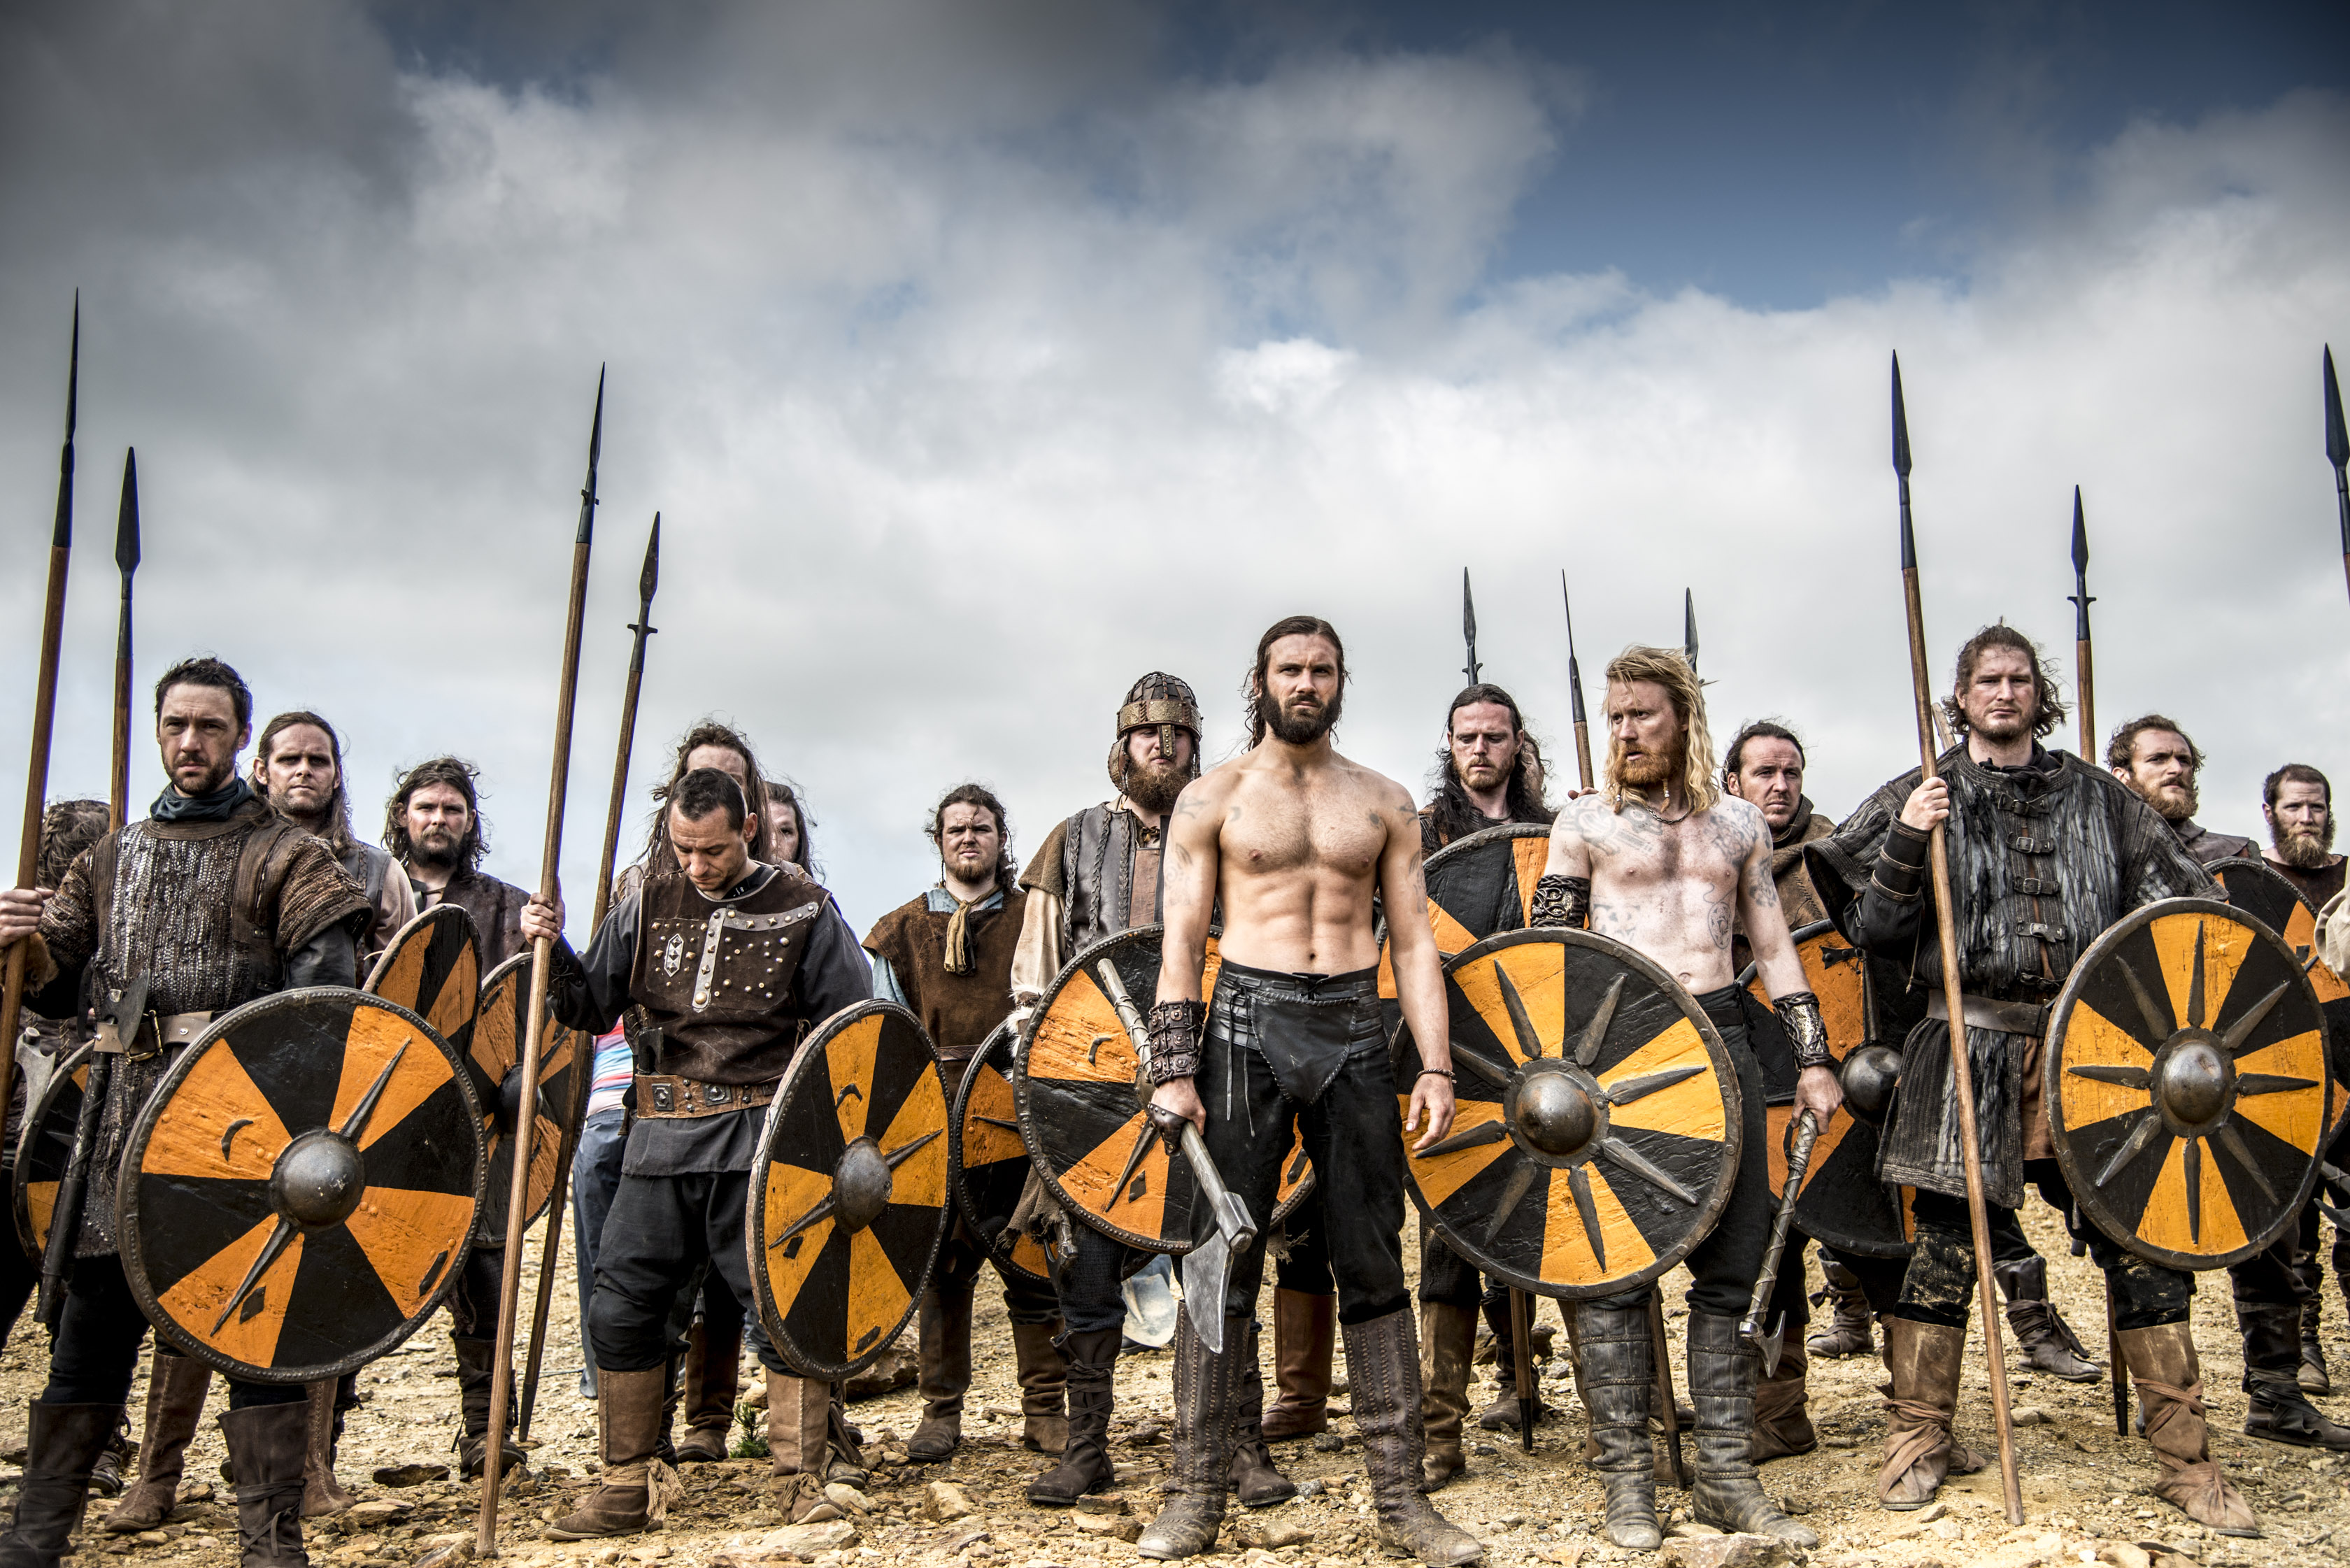 More than the raiders of tradition the Vikings were also traders and colonists who left an enduring mark on Britain